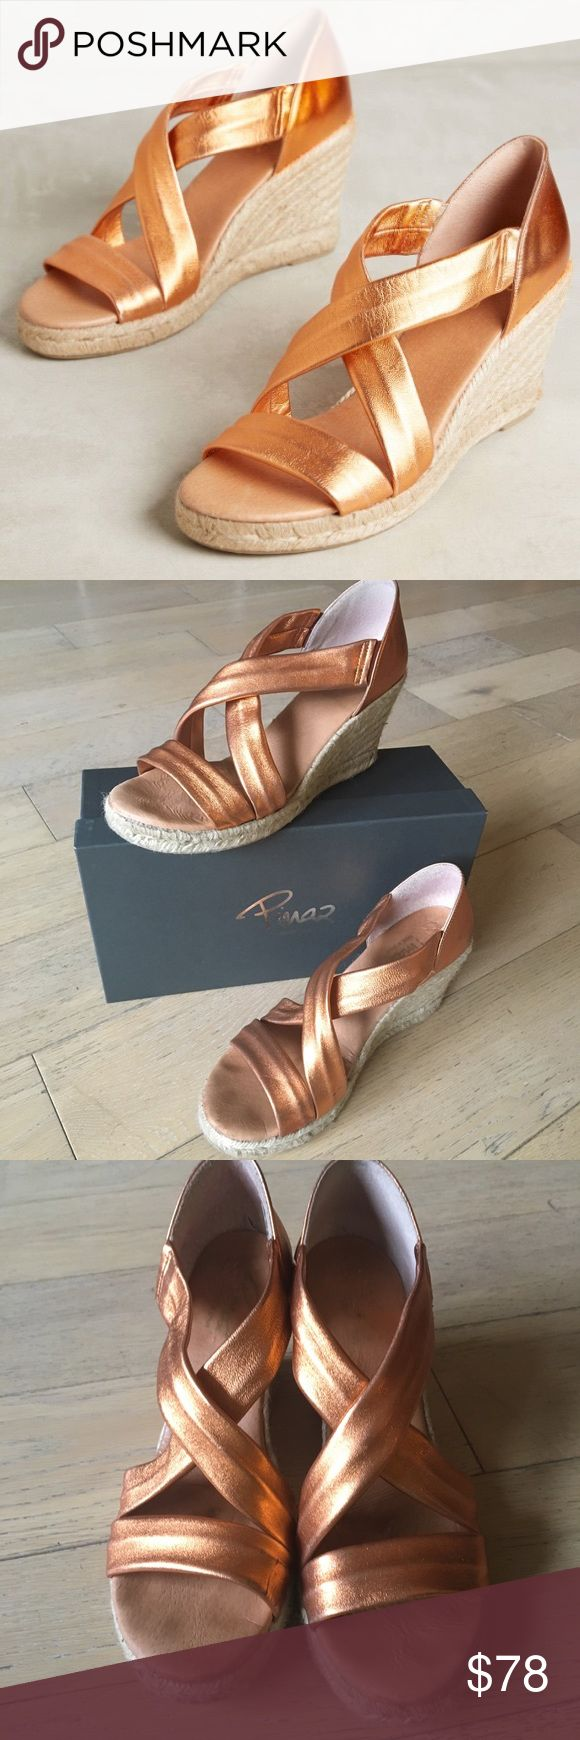 Anthropologie Metallic Espadrilles by Piñaz Really fun and super comfy metallic espadrilles by Spanish show brand Piñaz. Signs of wear to metallic straps and inside of heel. Not noticeable while wearing. Box included Anthropologie Shoes Espadrilles